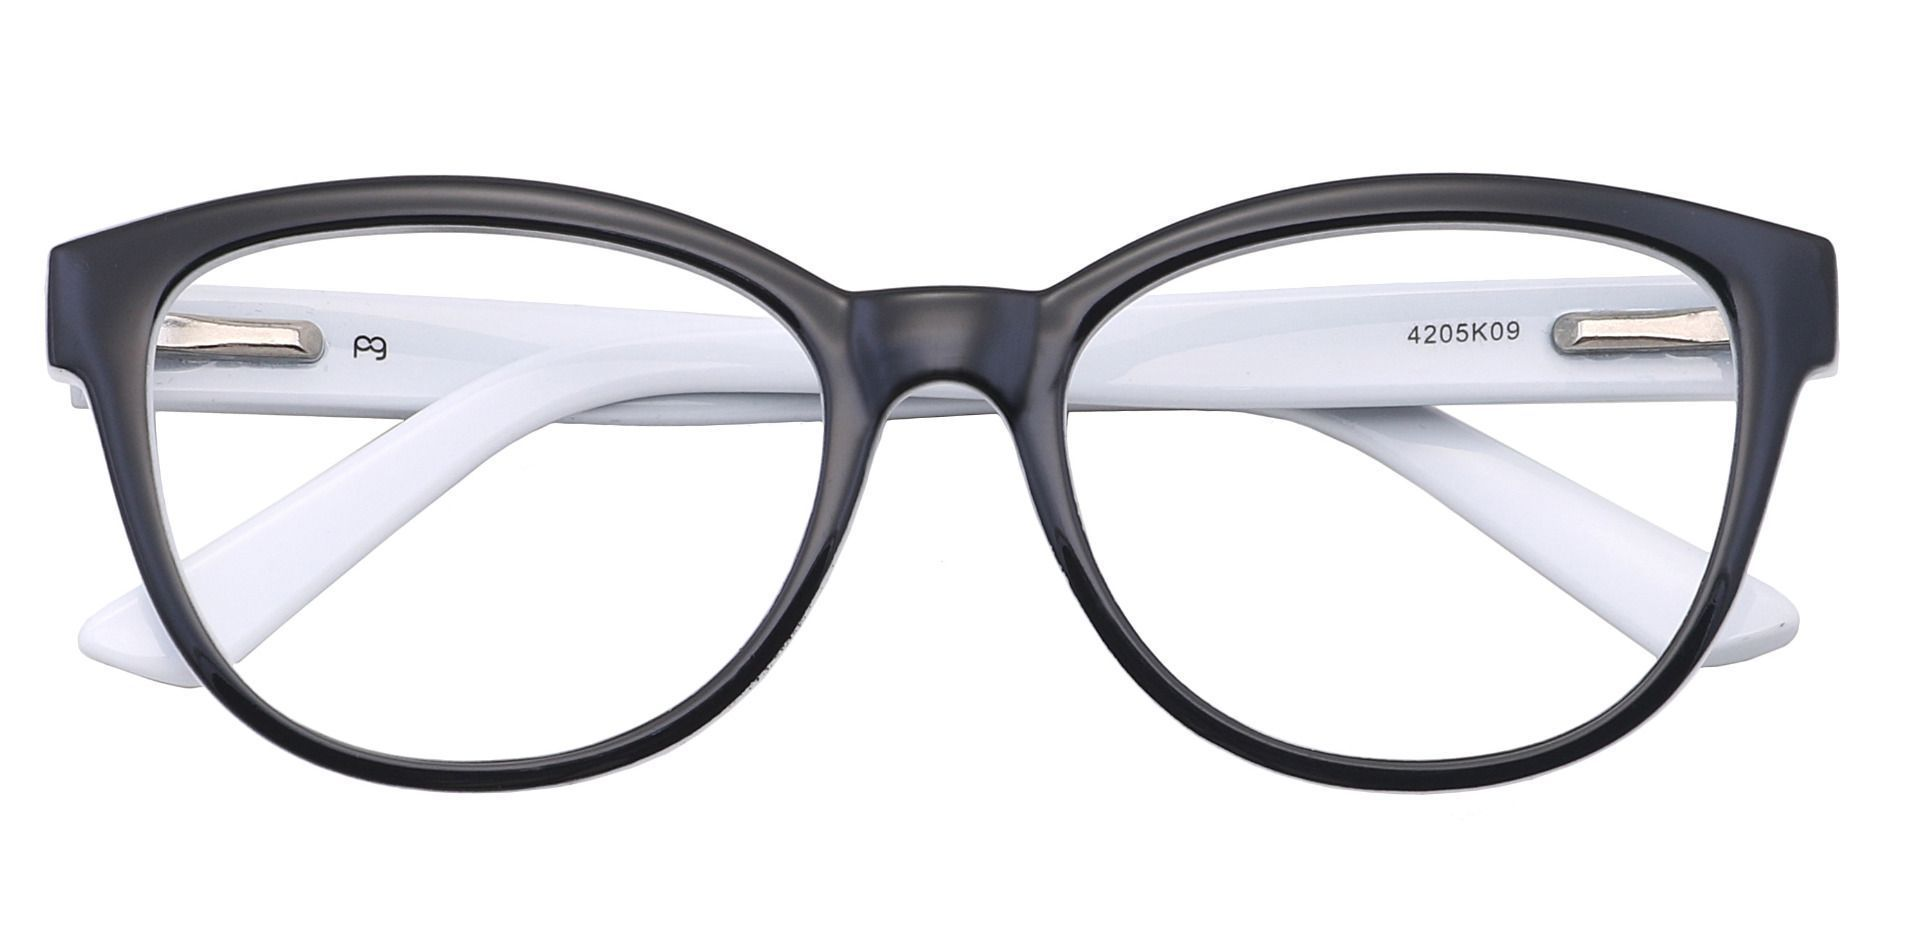 Primrose Oval Blue Light Blocking Glasses - Black